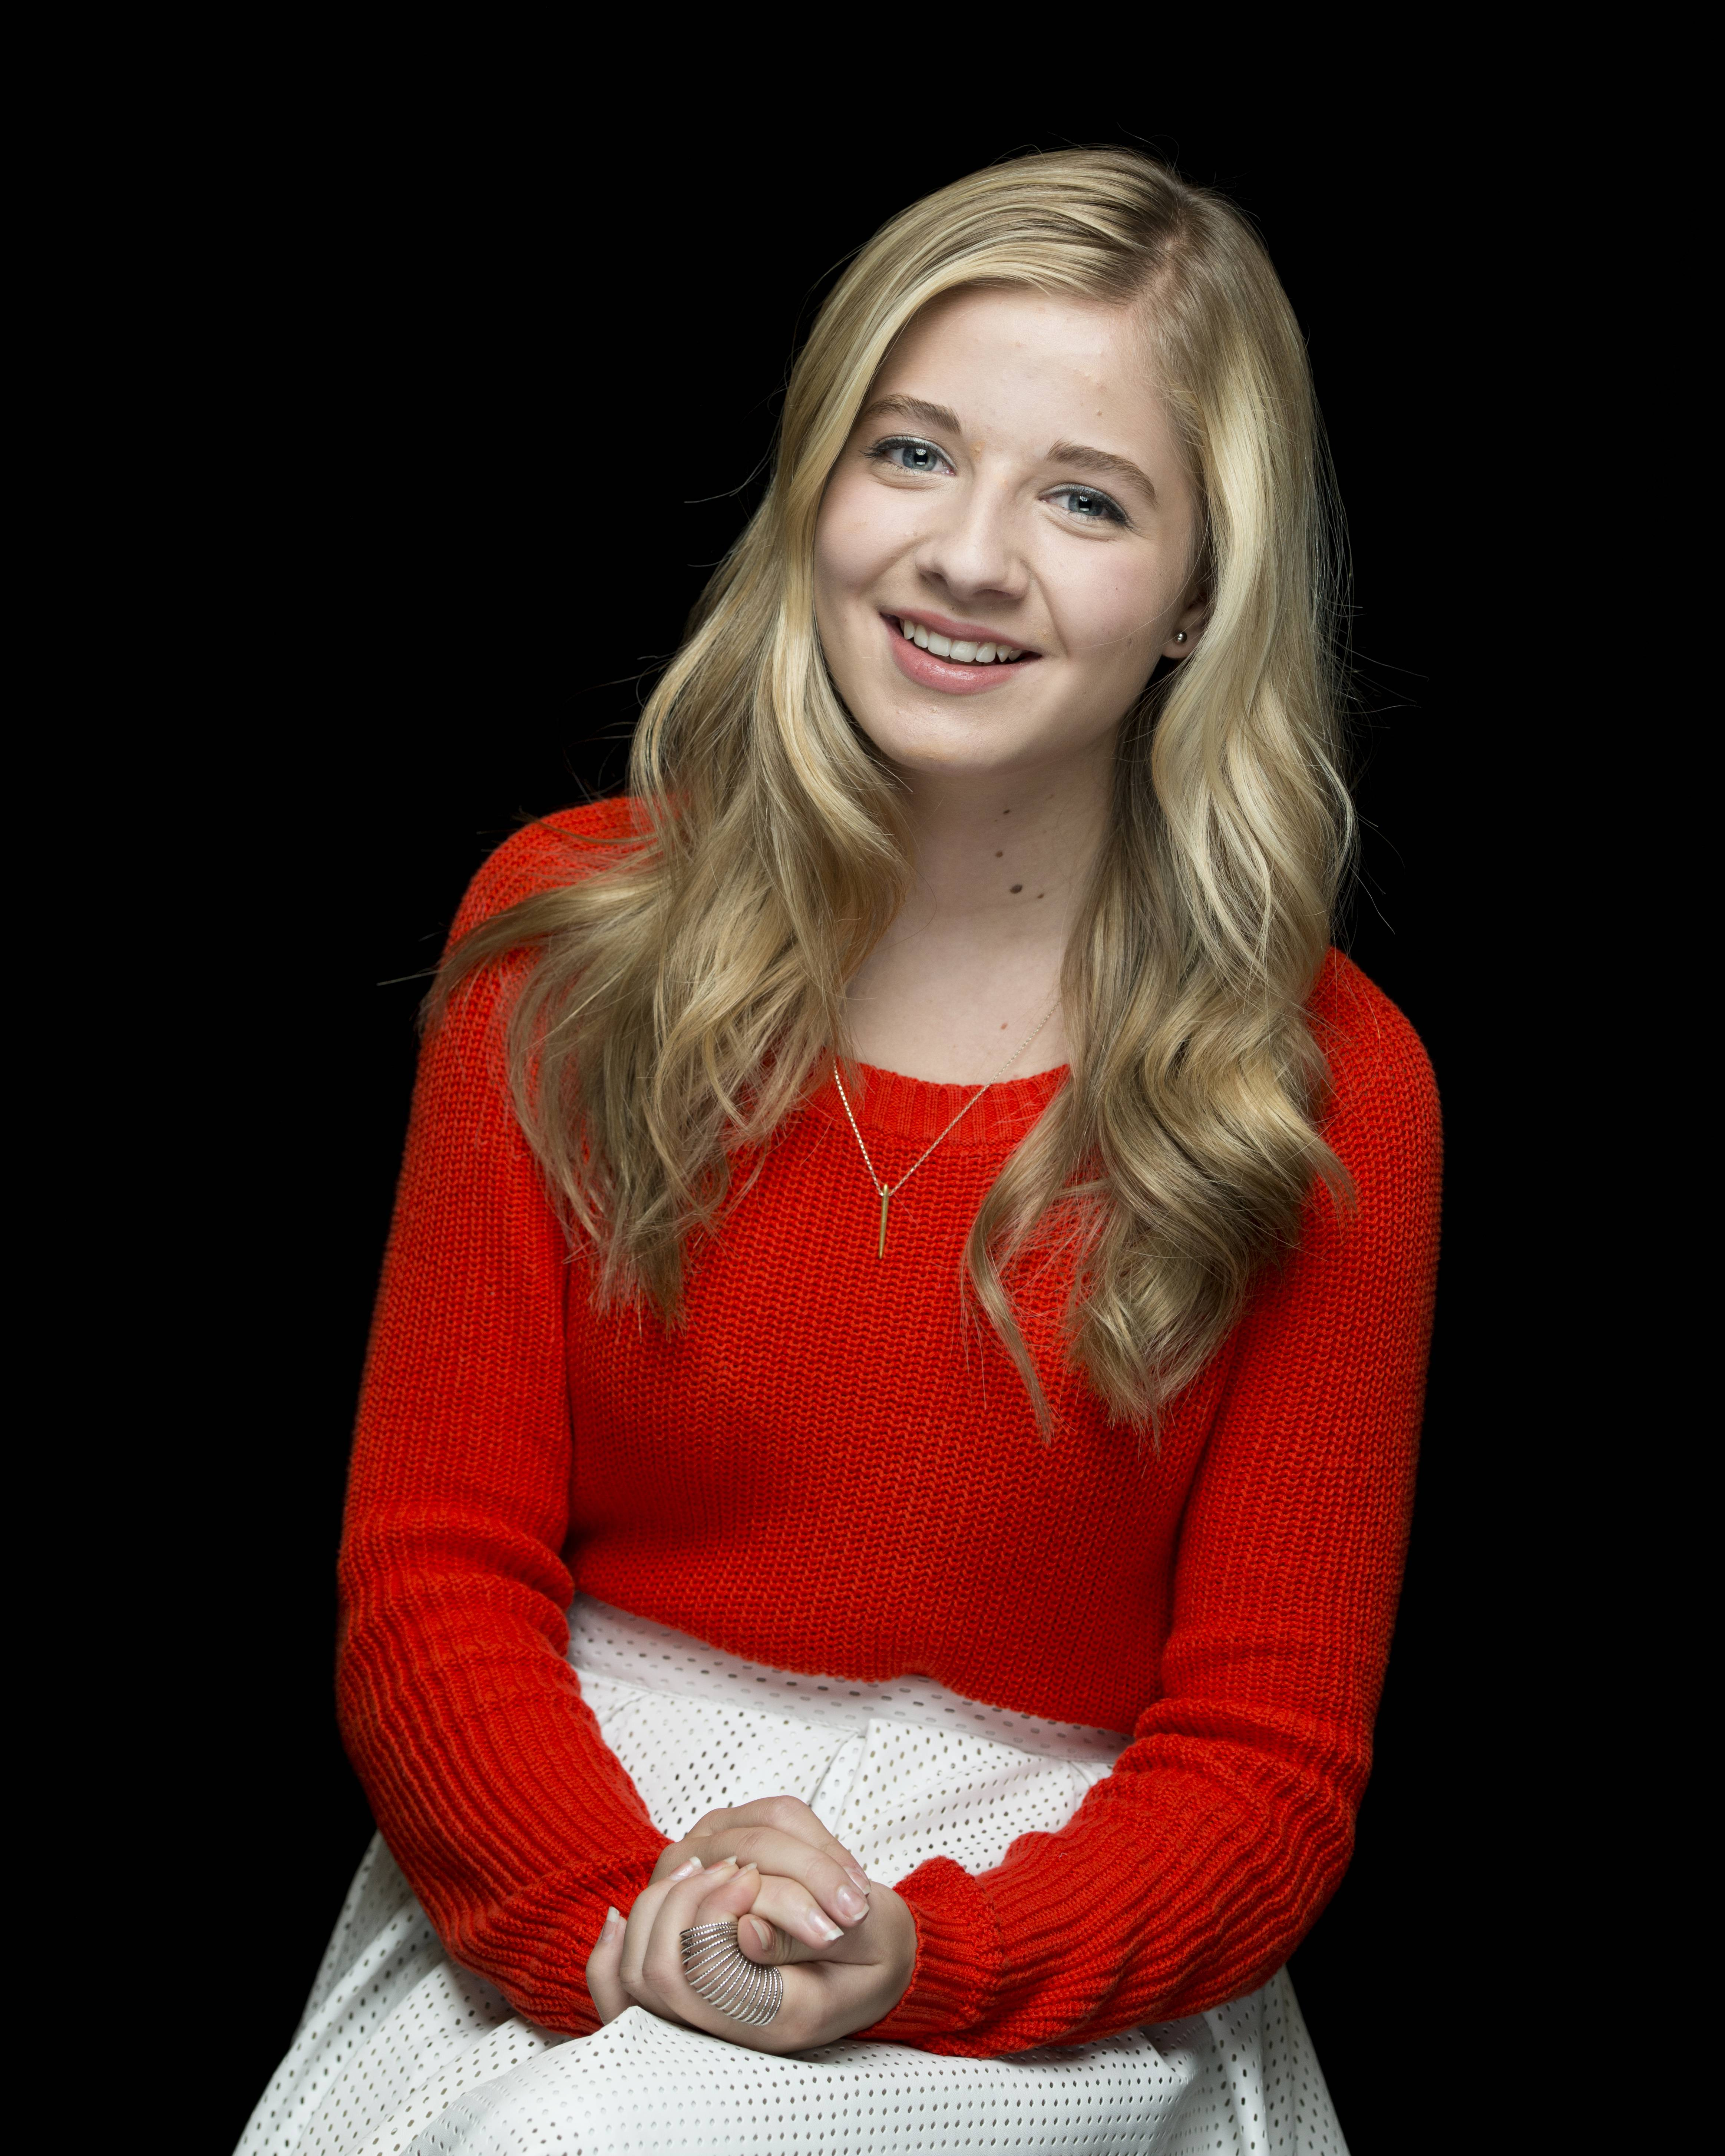 Classical crossover singer Jackie Evancho headlines on Thursday, Oct. 6, at the Arcada Theatre in St. Charles.